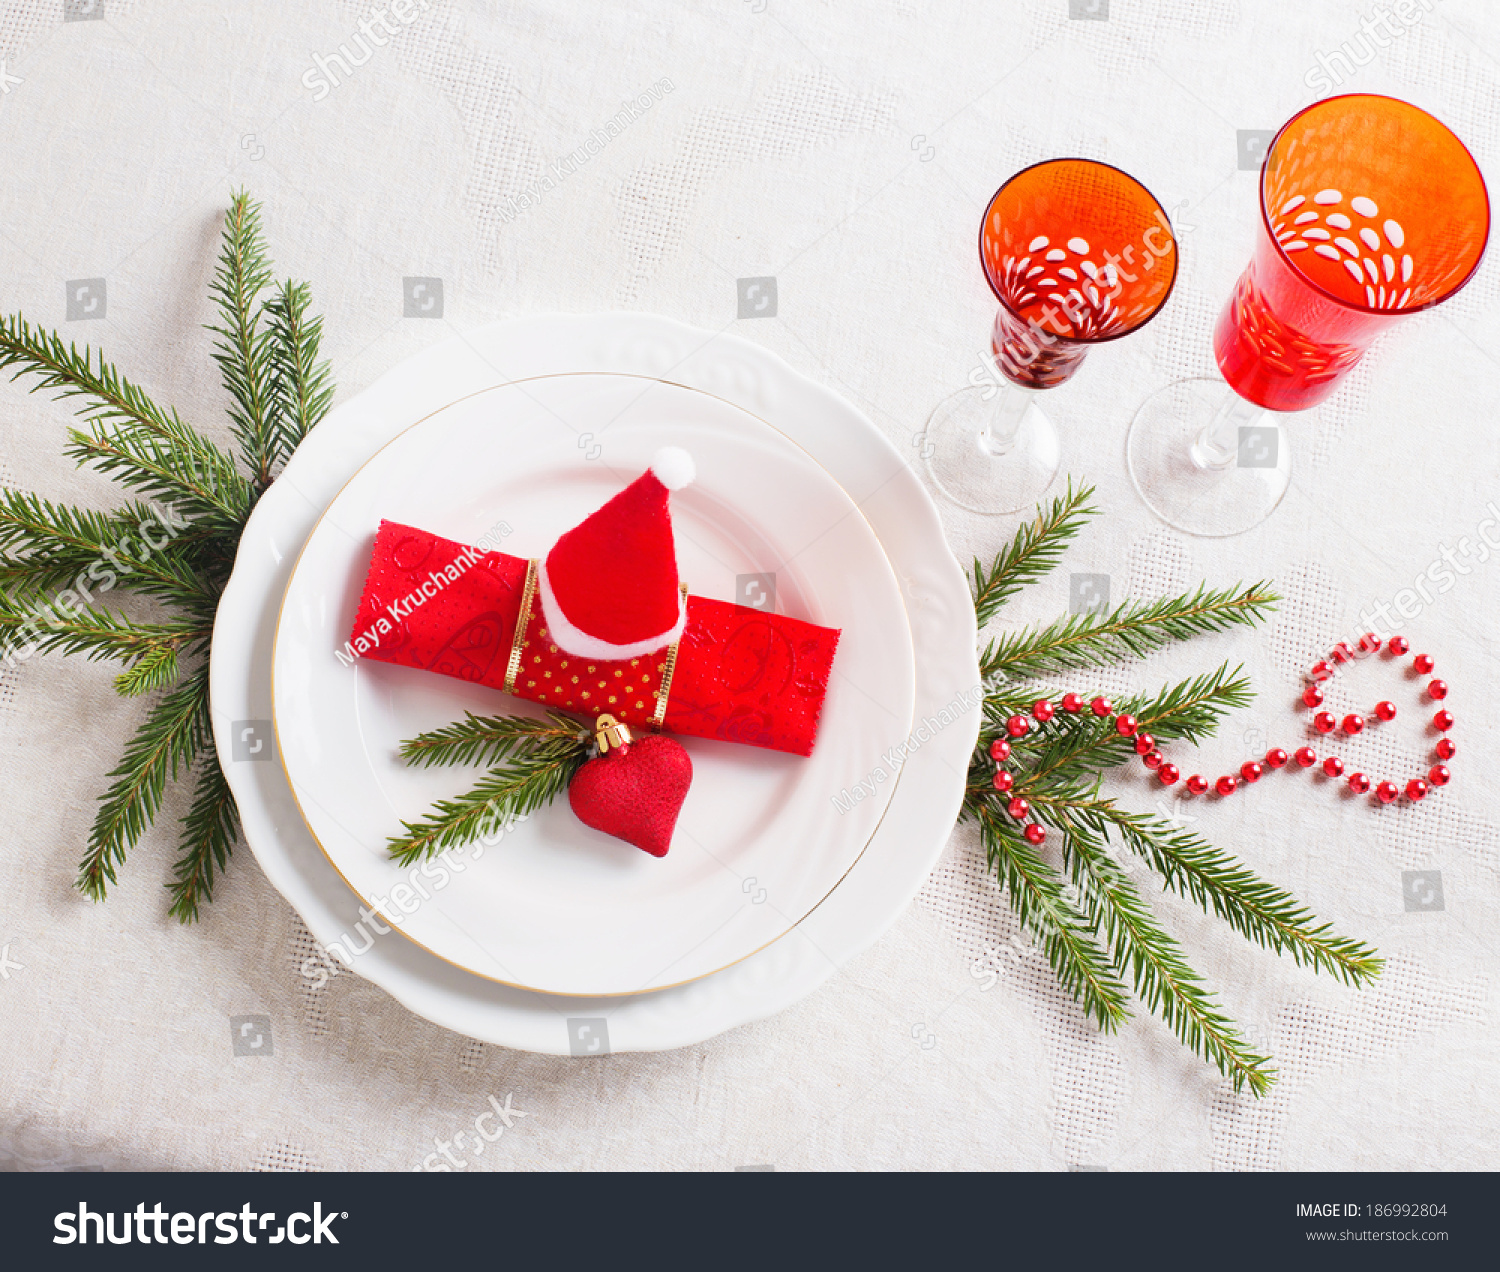 Christmas Tables Decorated Decorated Christmas Table Stock Photo 186992804 Shutterstock